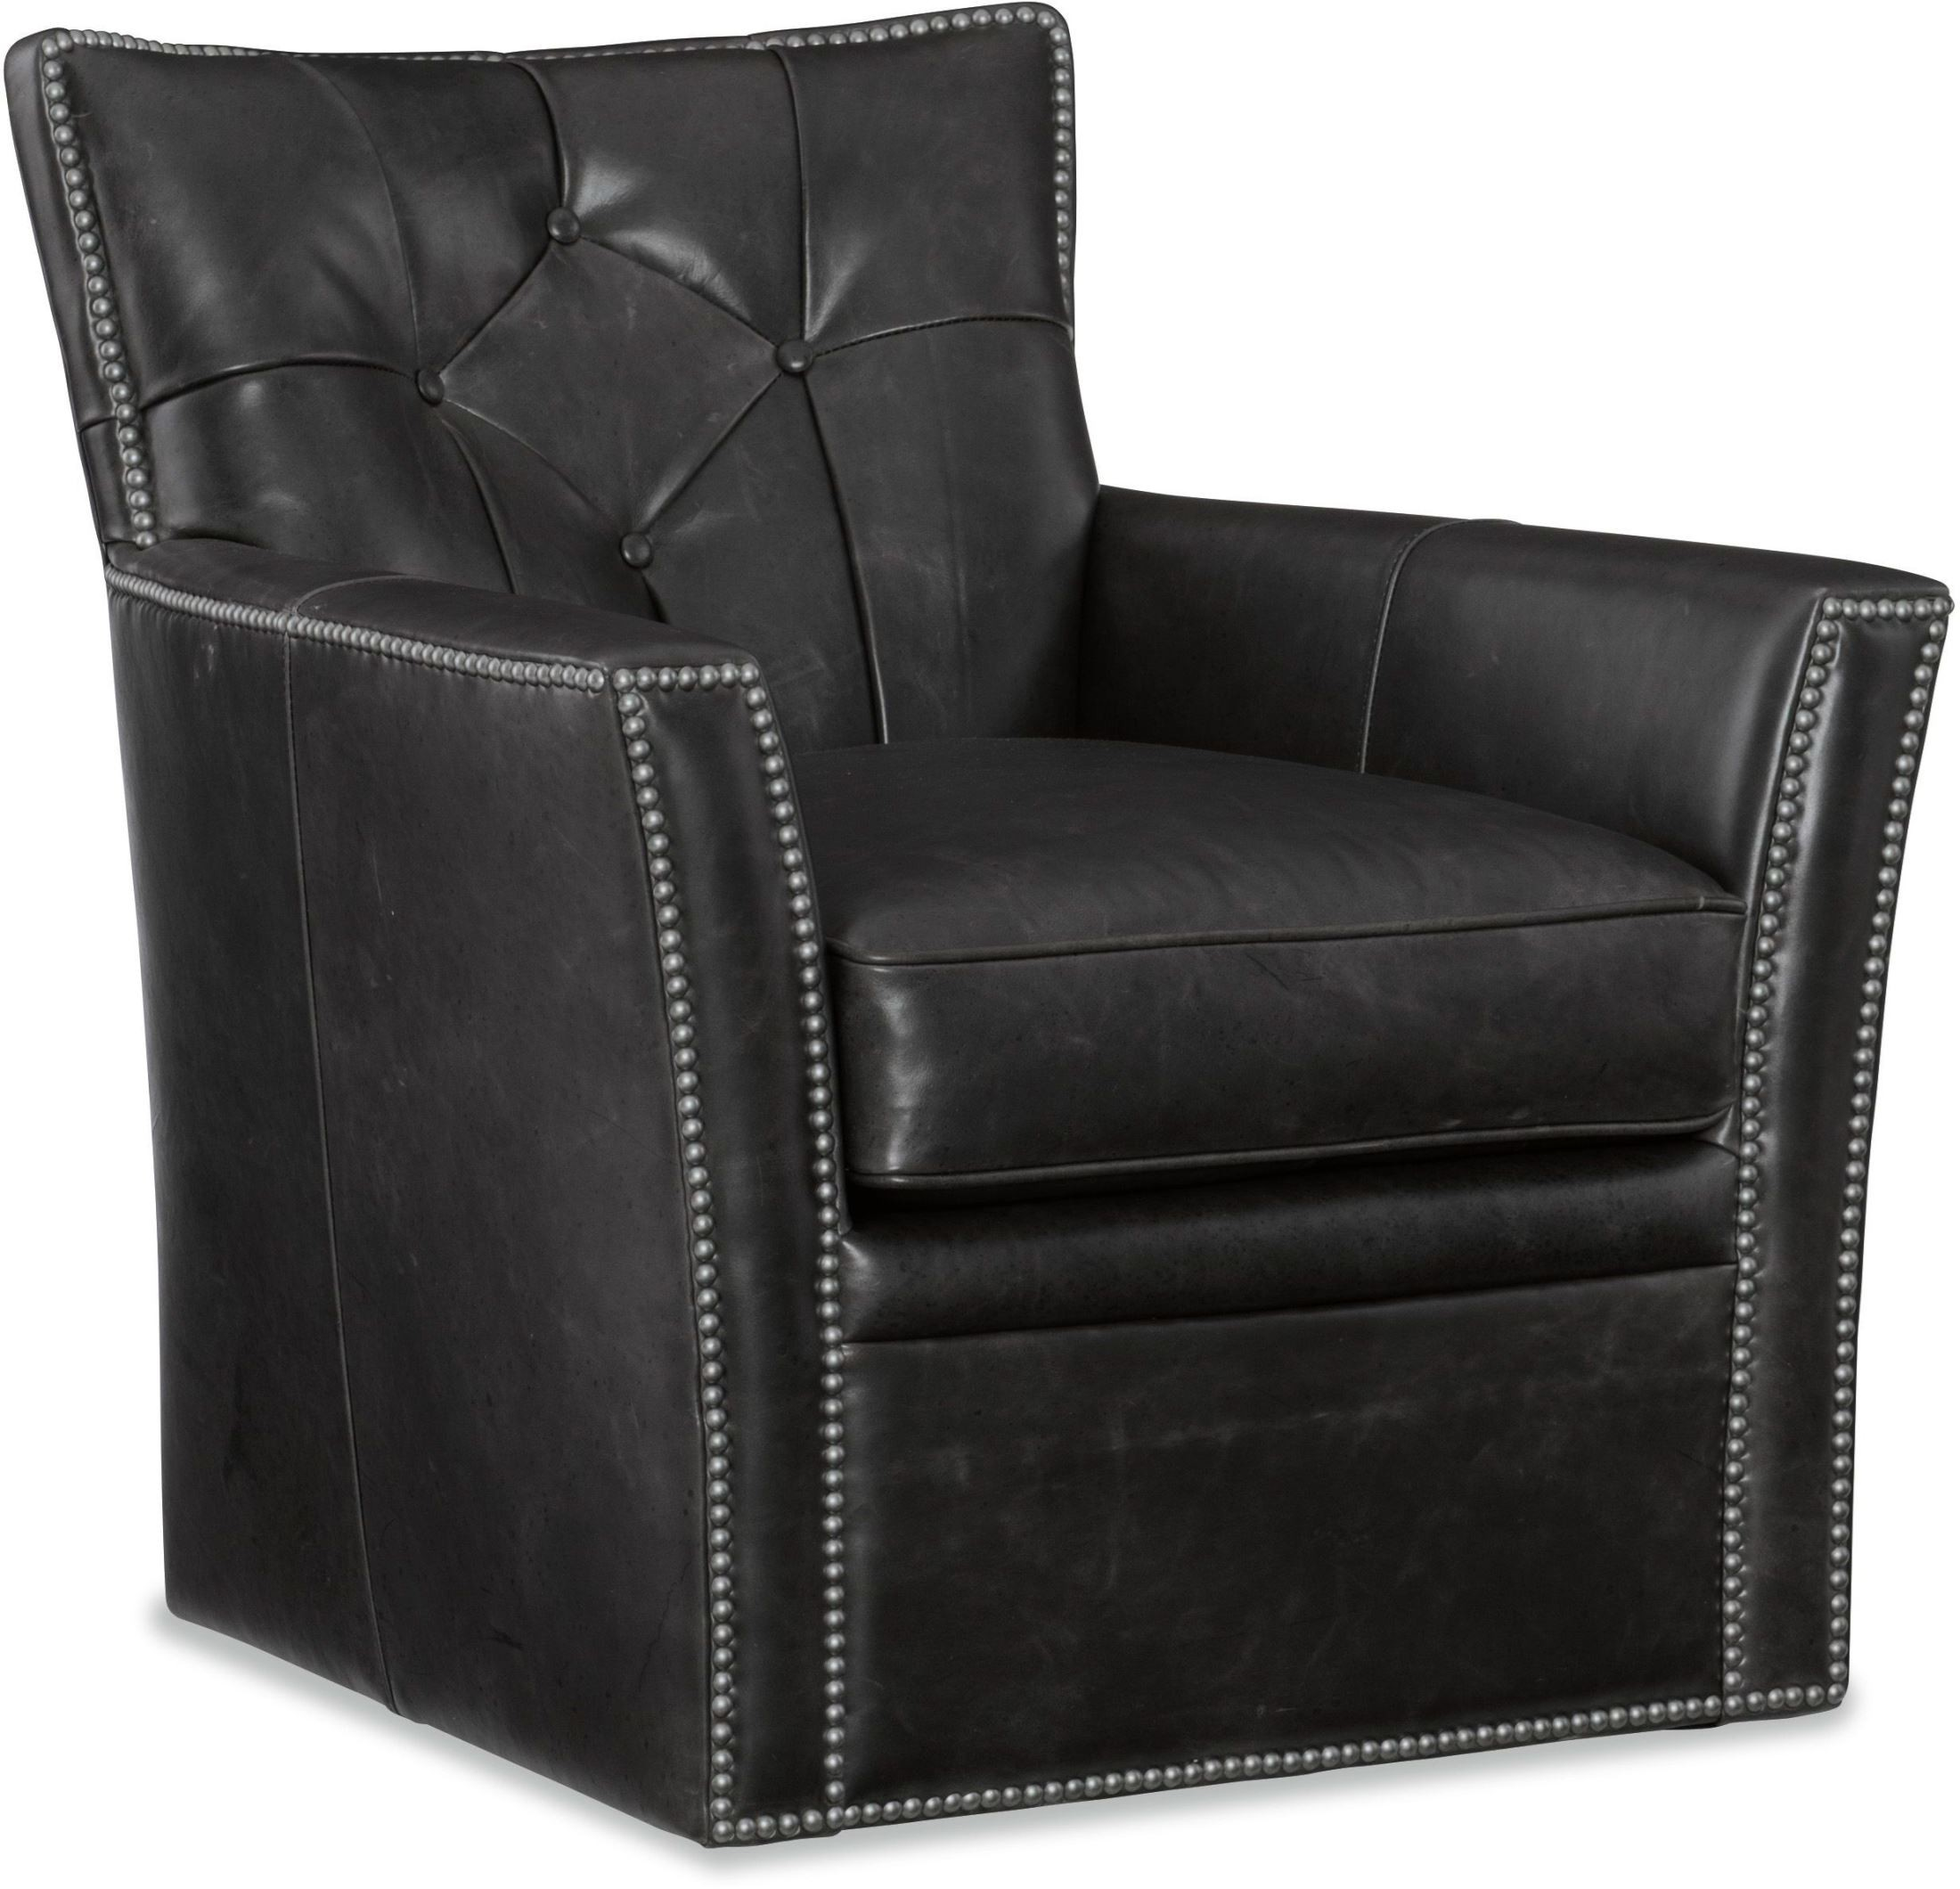 Conner Black Leather Swivel Club Chair from Hooker